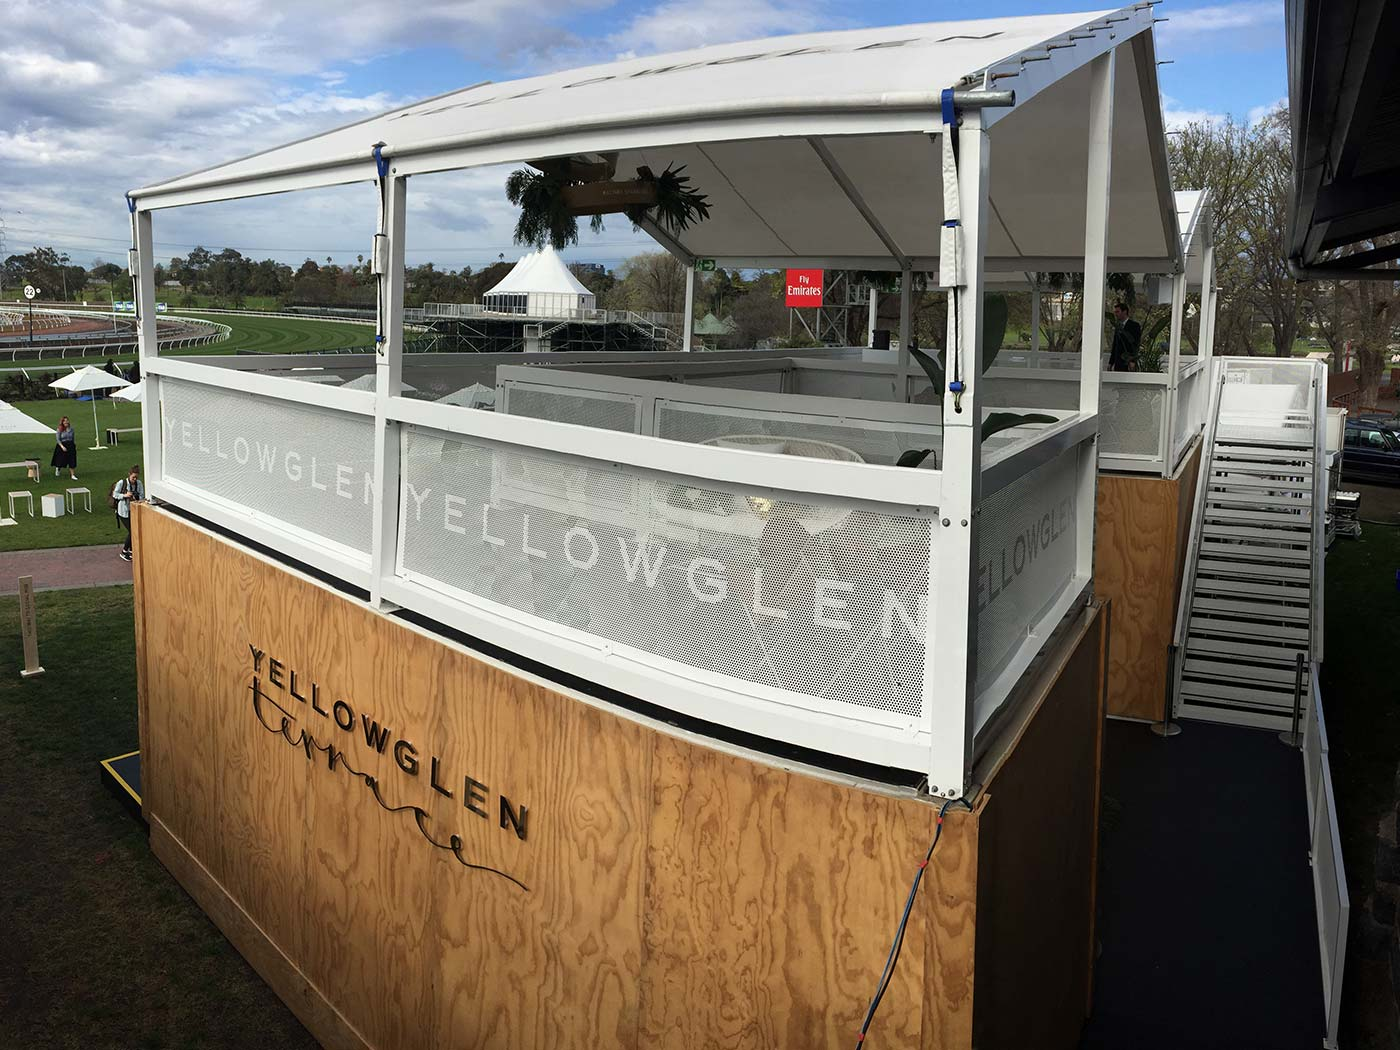 Yellowglen-Terrace-Shipping-Container-Hospitality-Activation-5